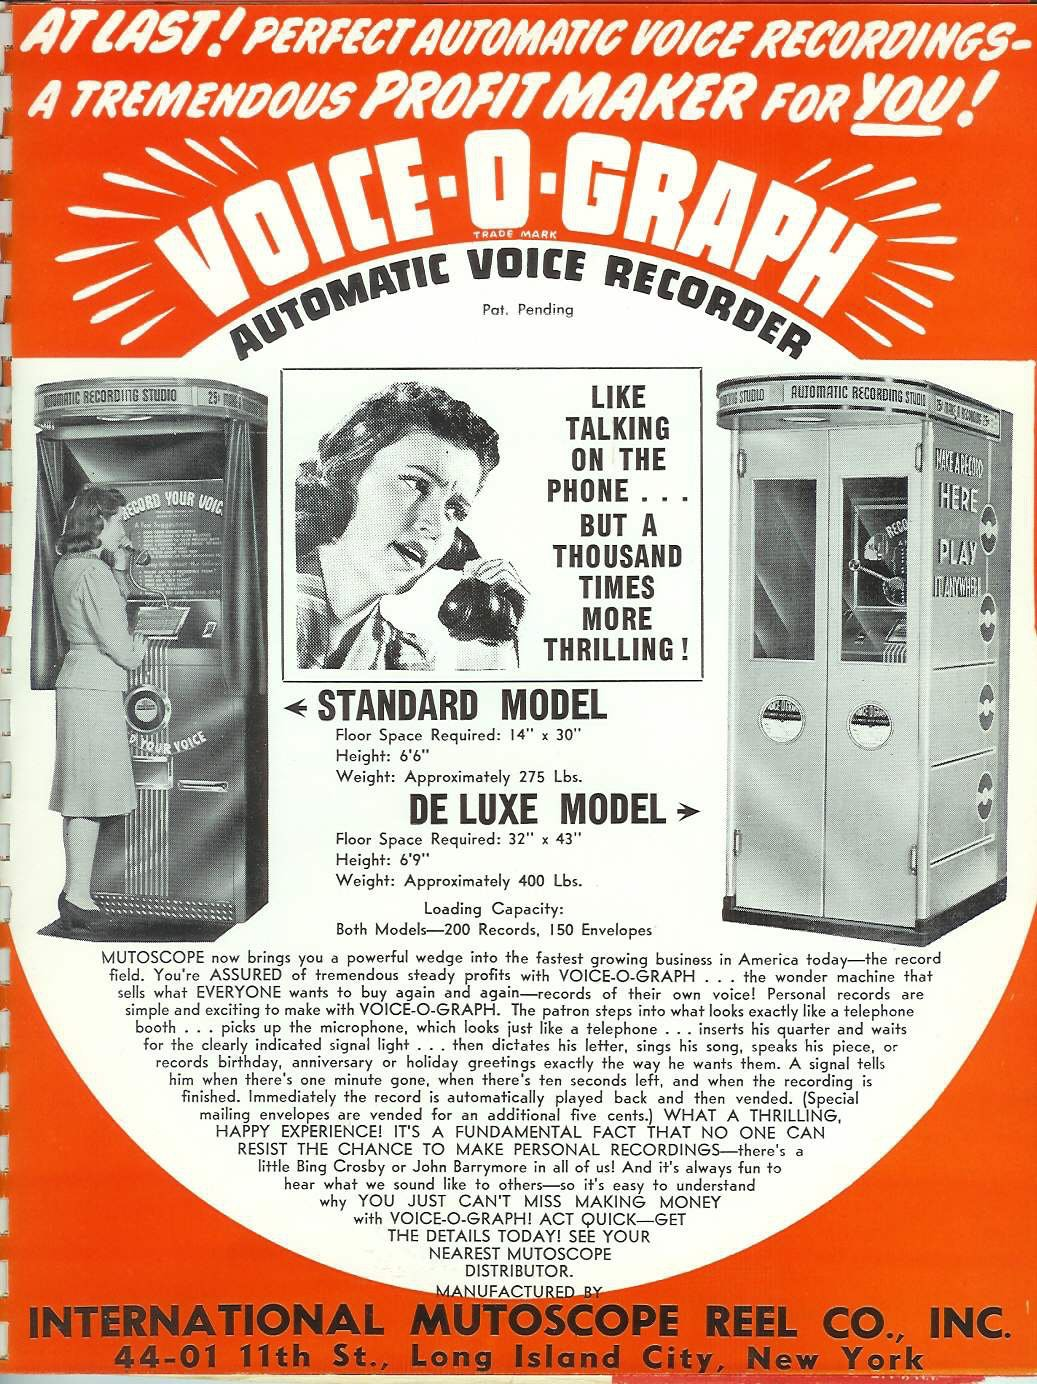 An advertisement for a voice-o-graph.